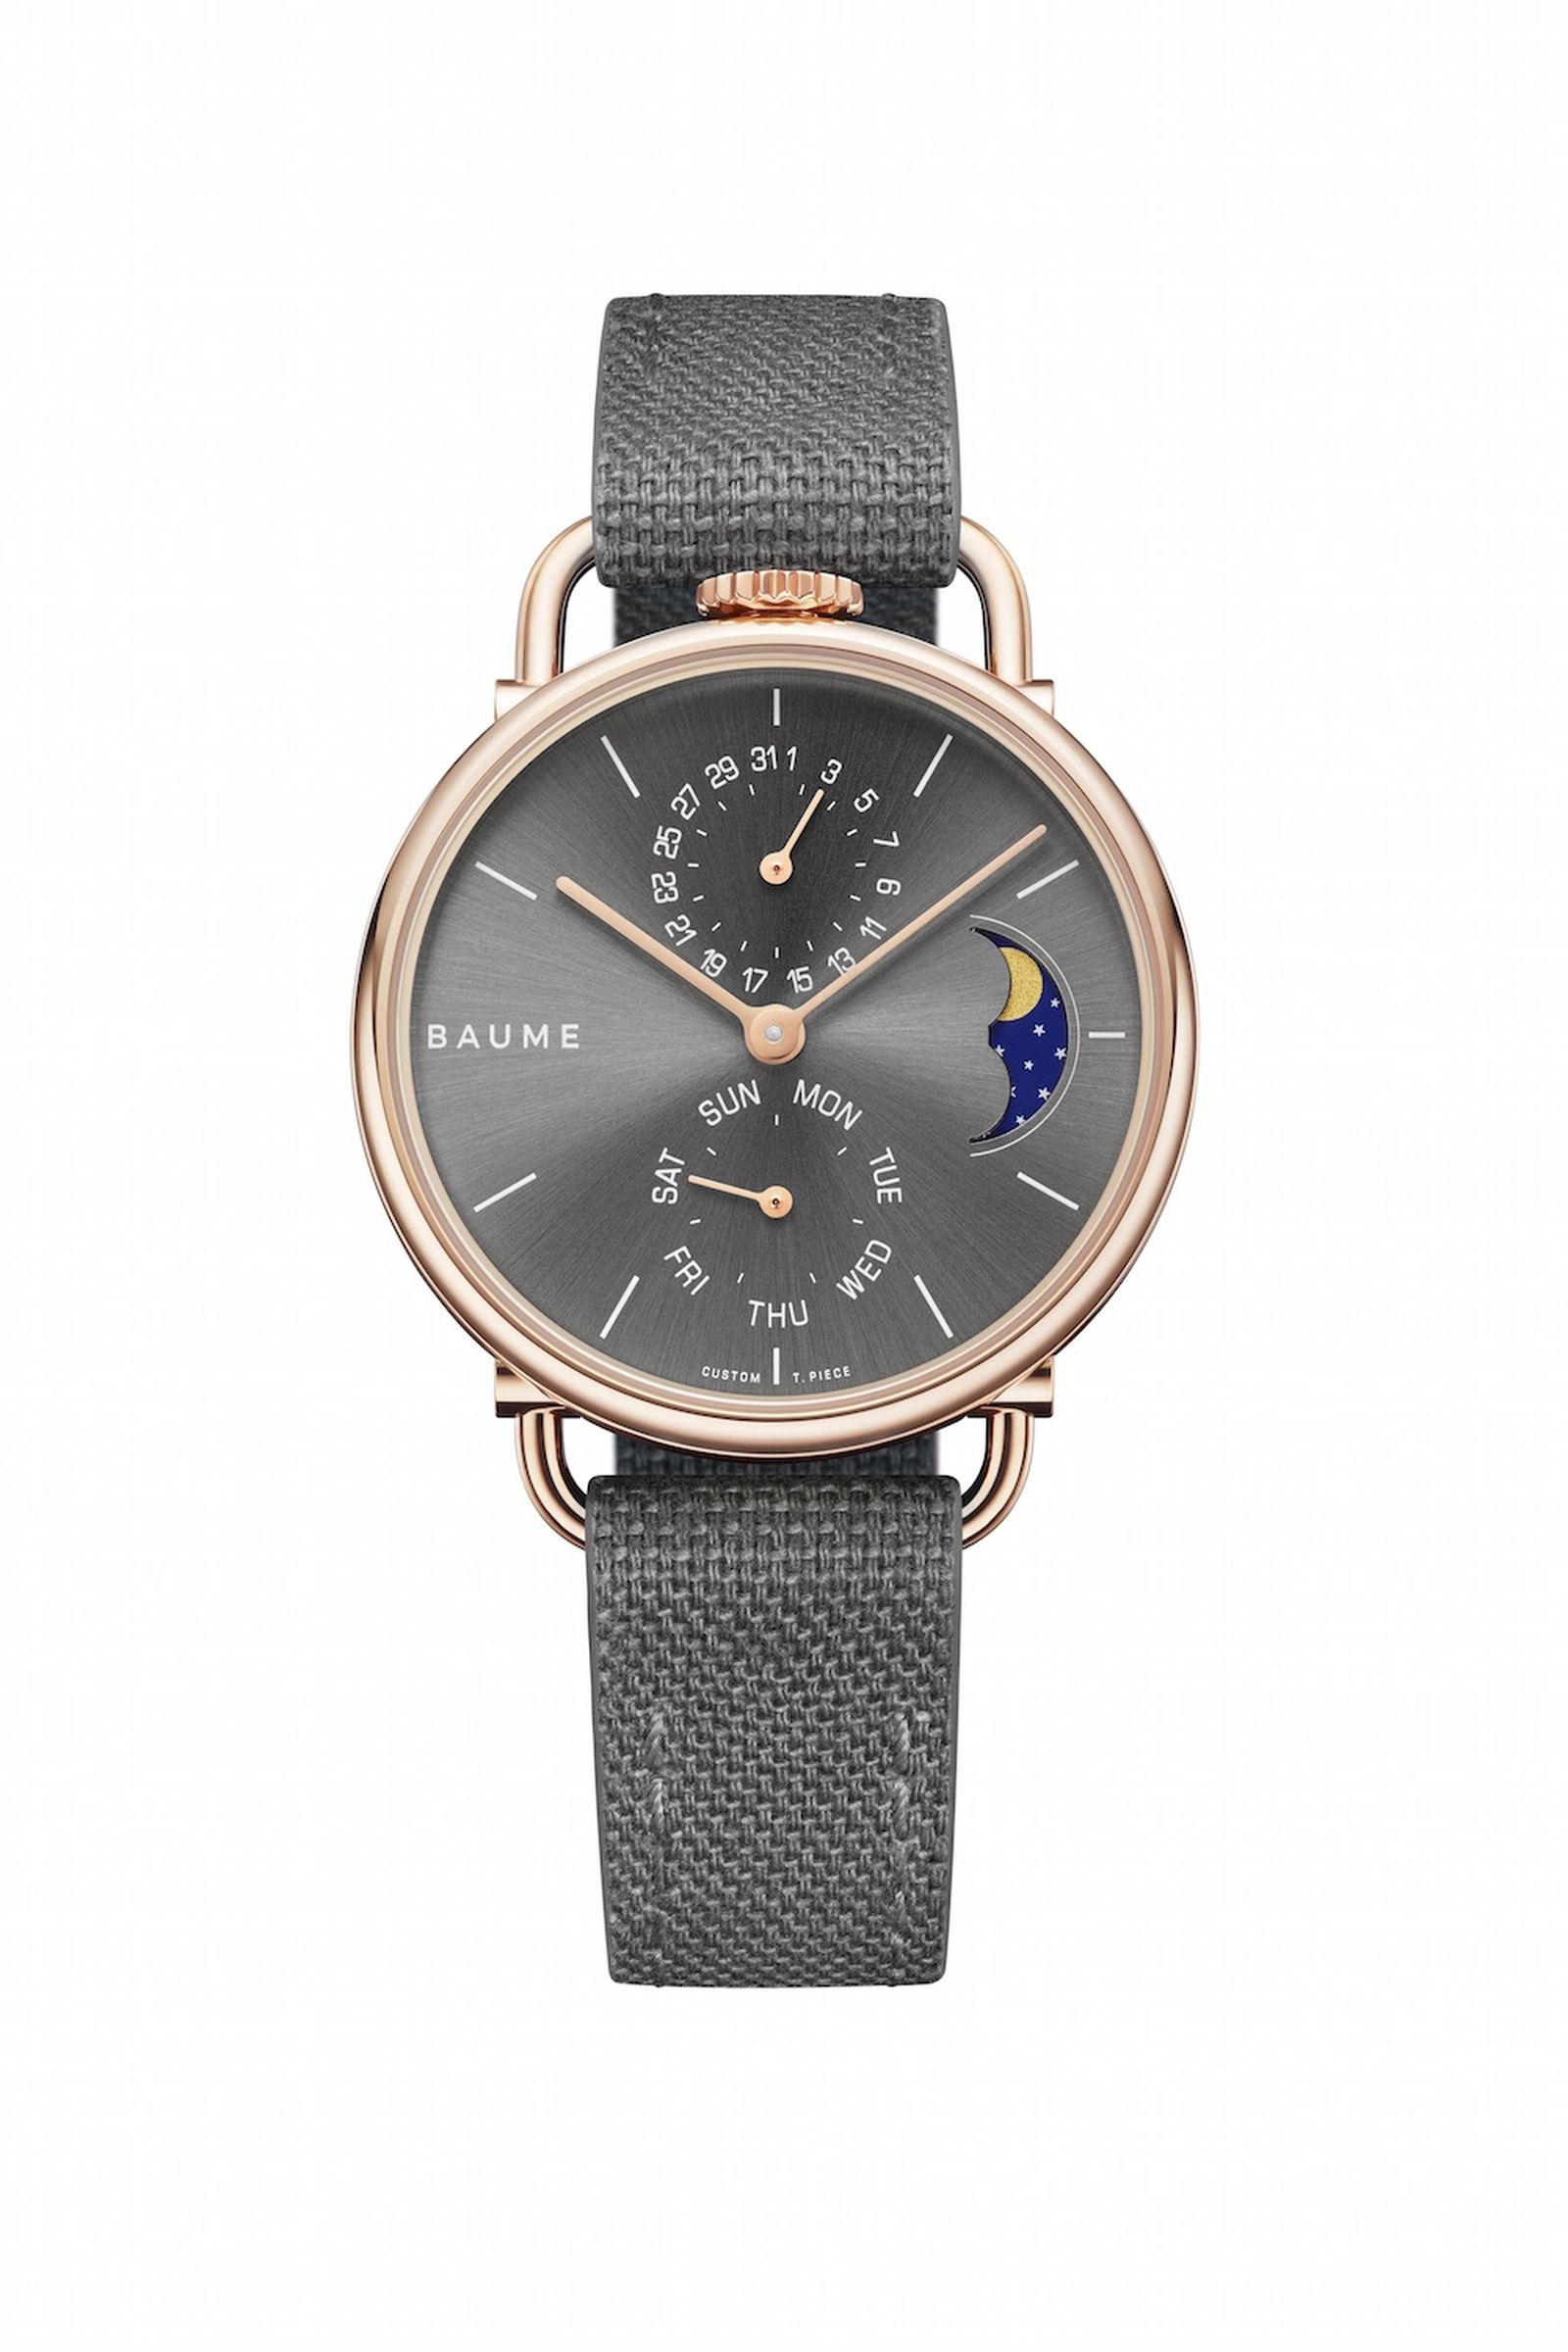 baume-sustainable-watch-collection-01